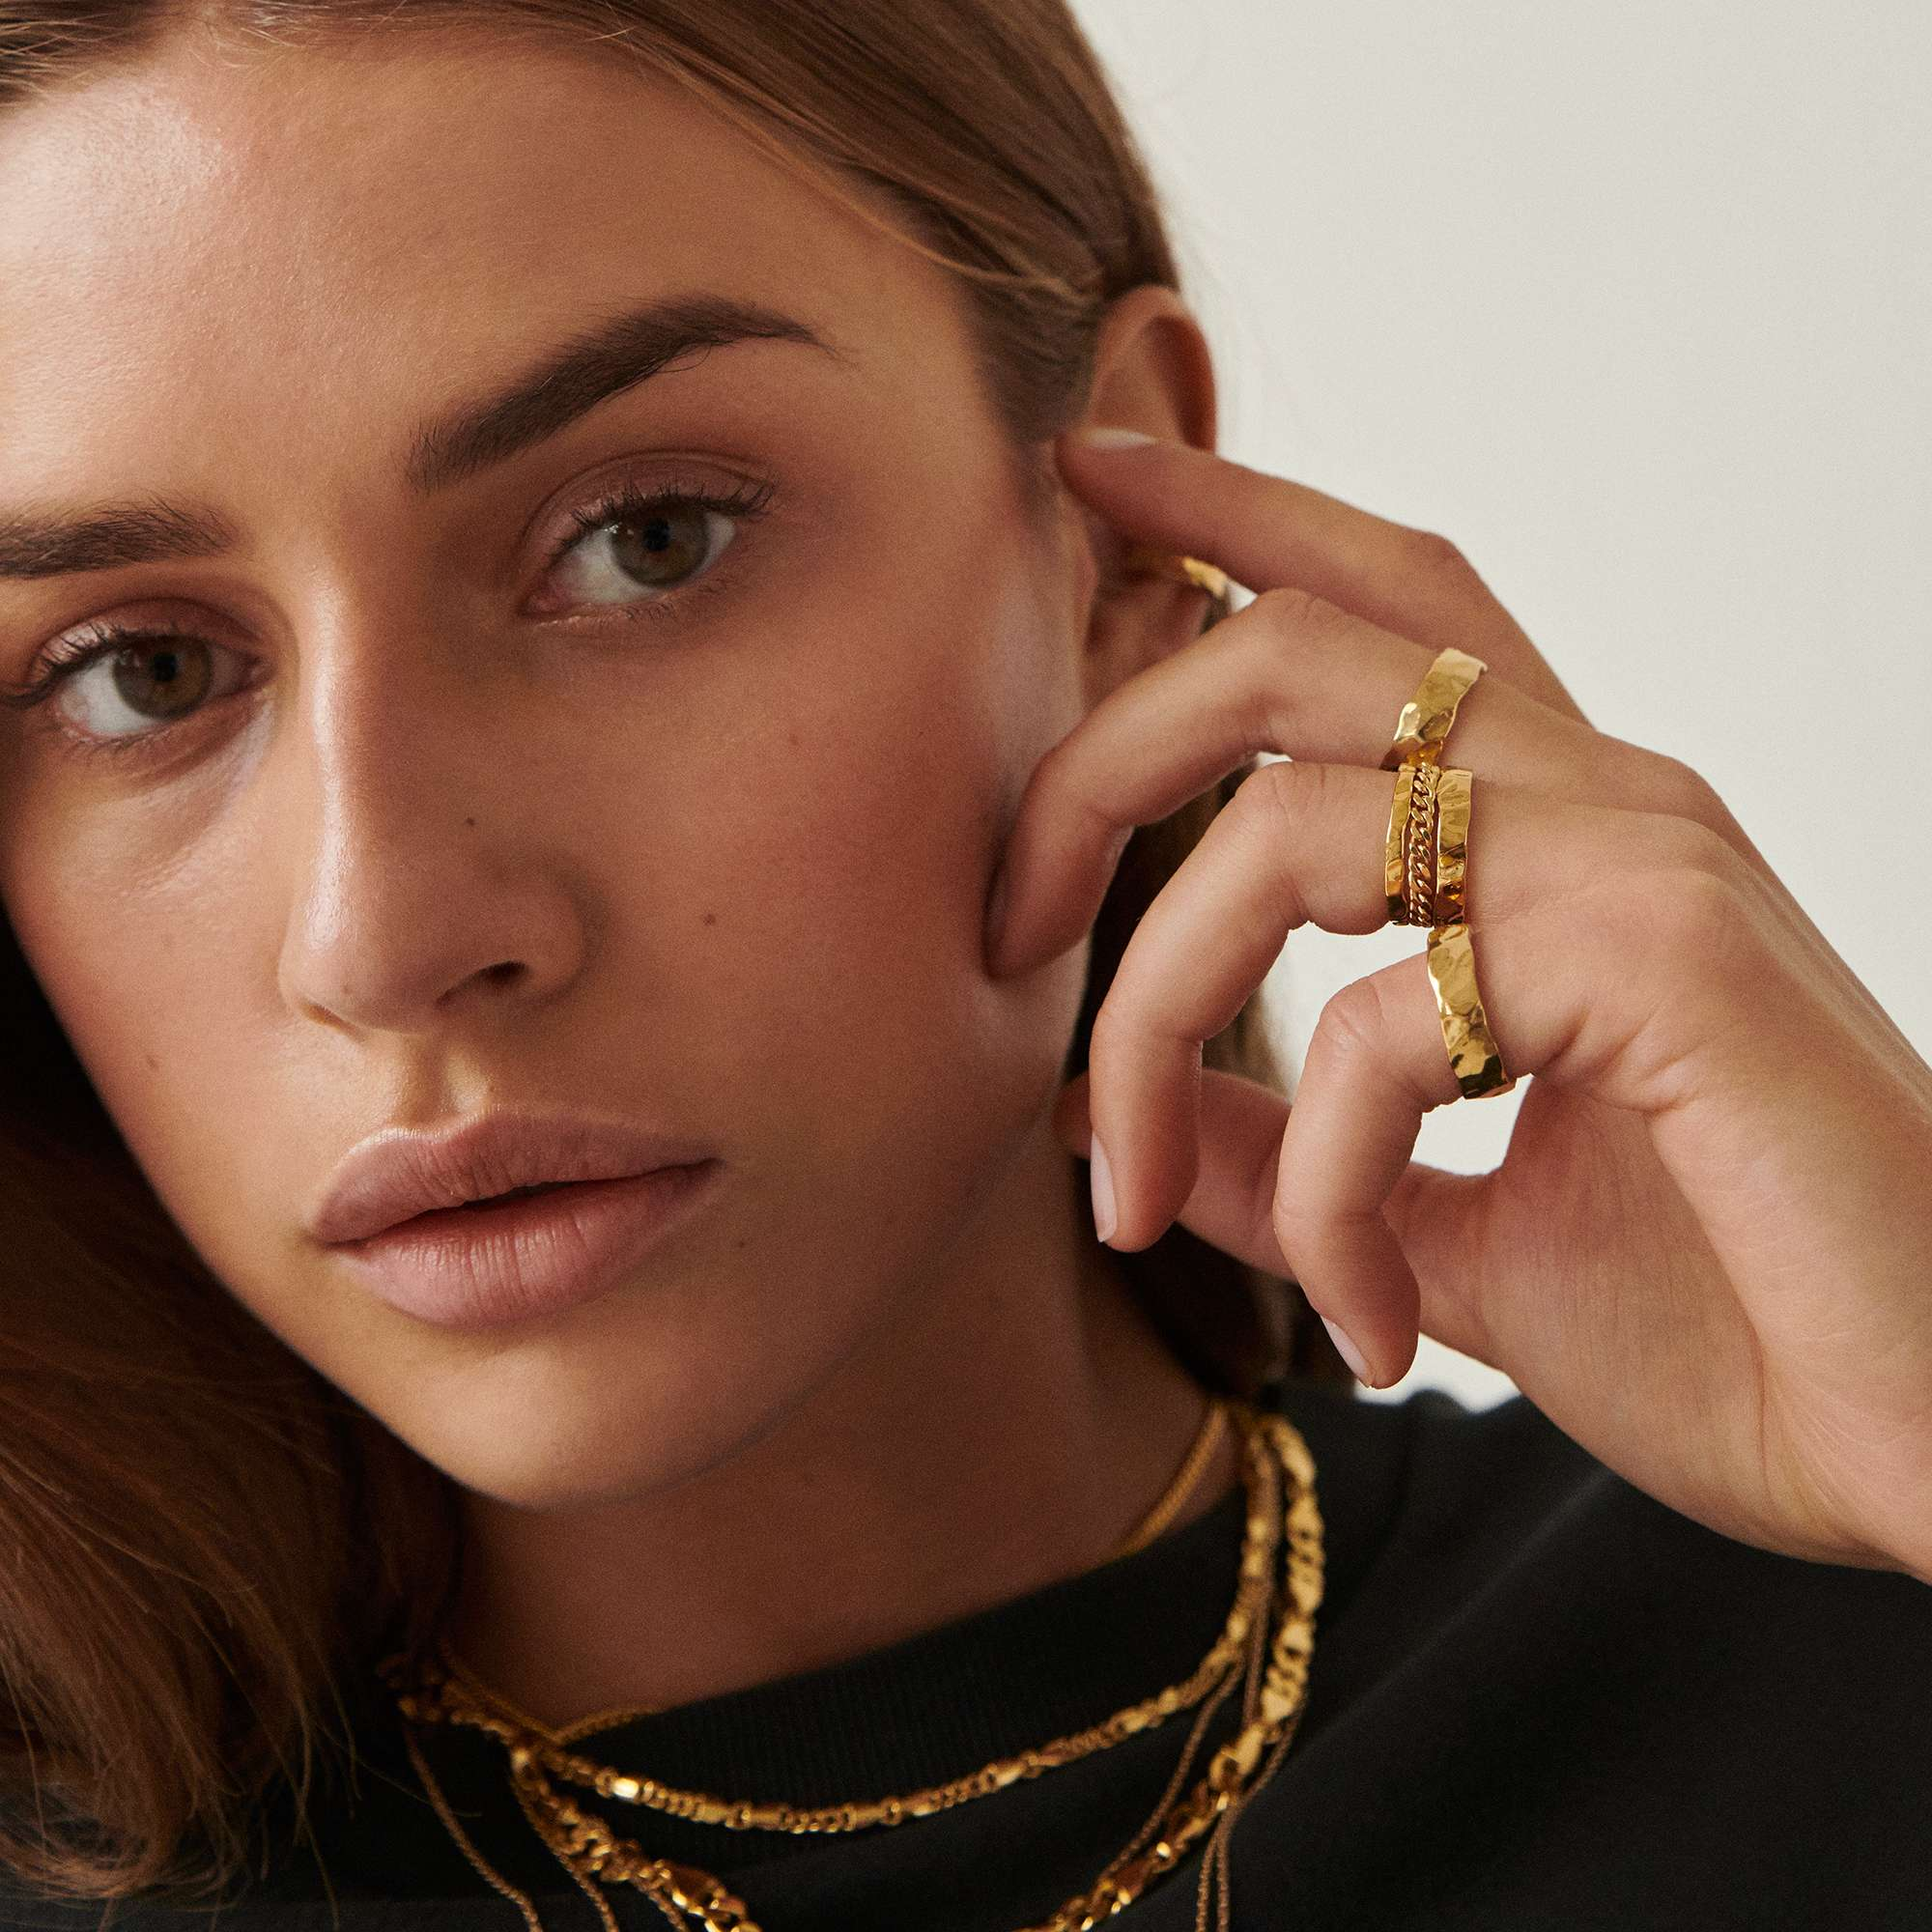 A model in a black shirt wearing multiple necklaces and rings by Camille Brinch.